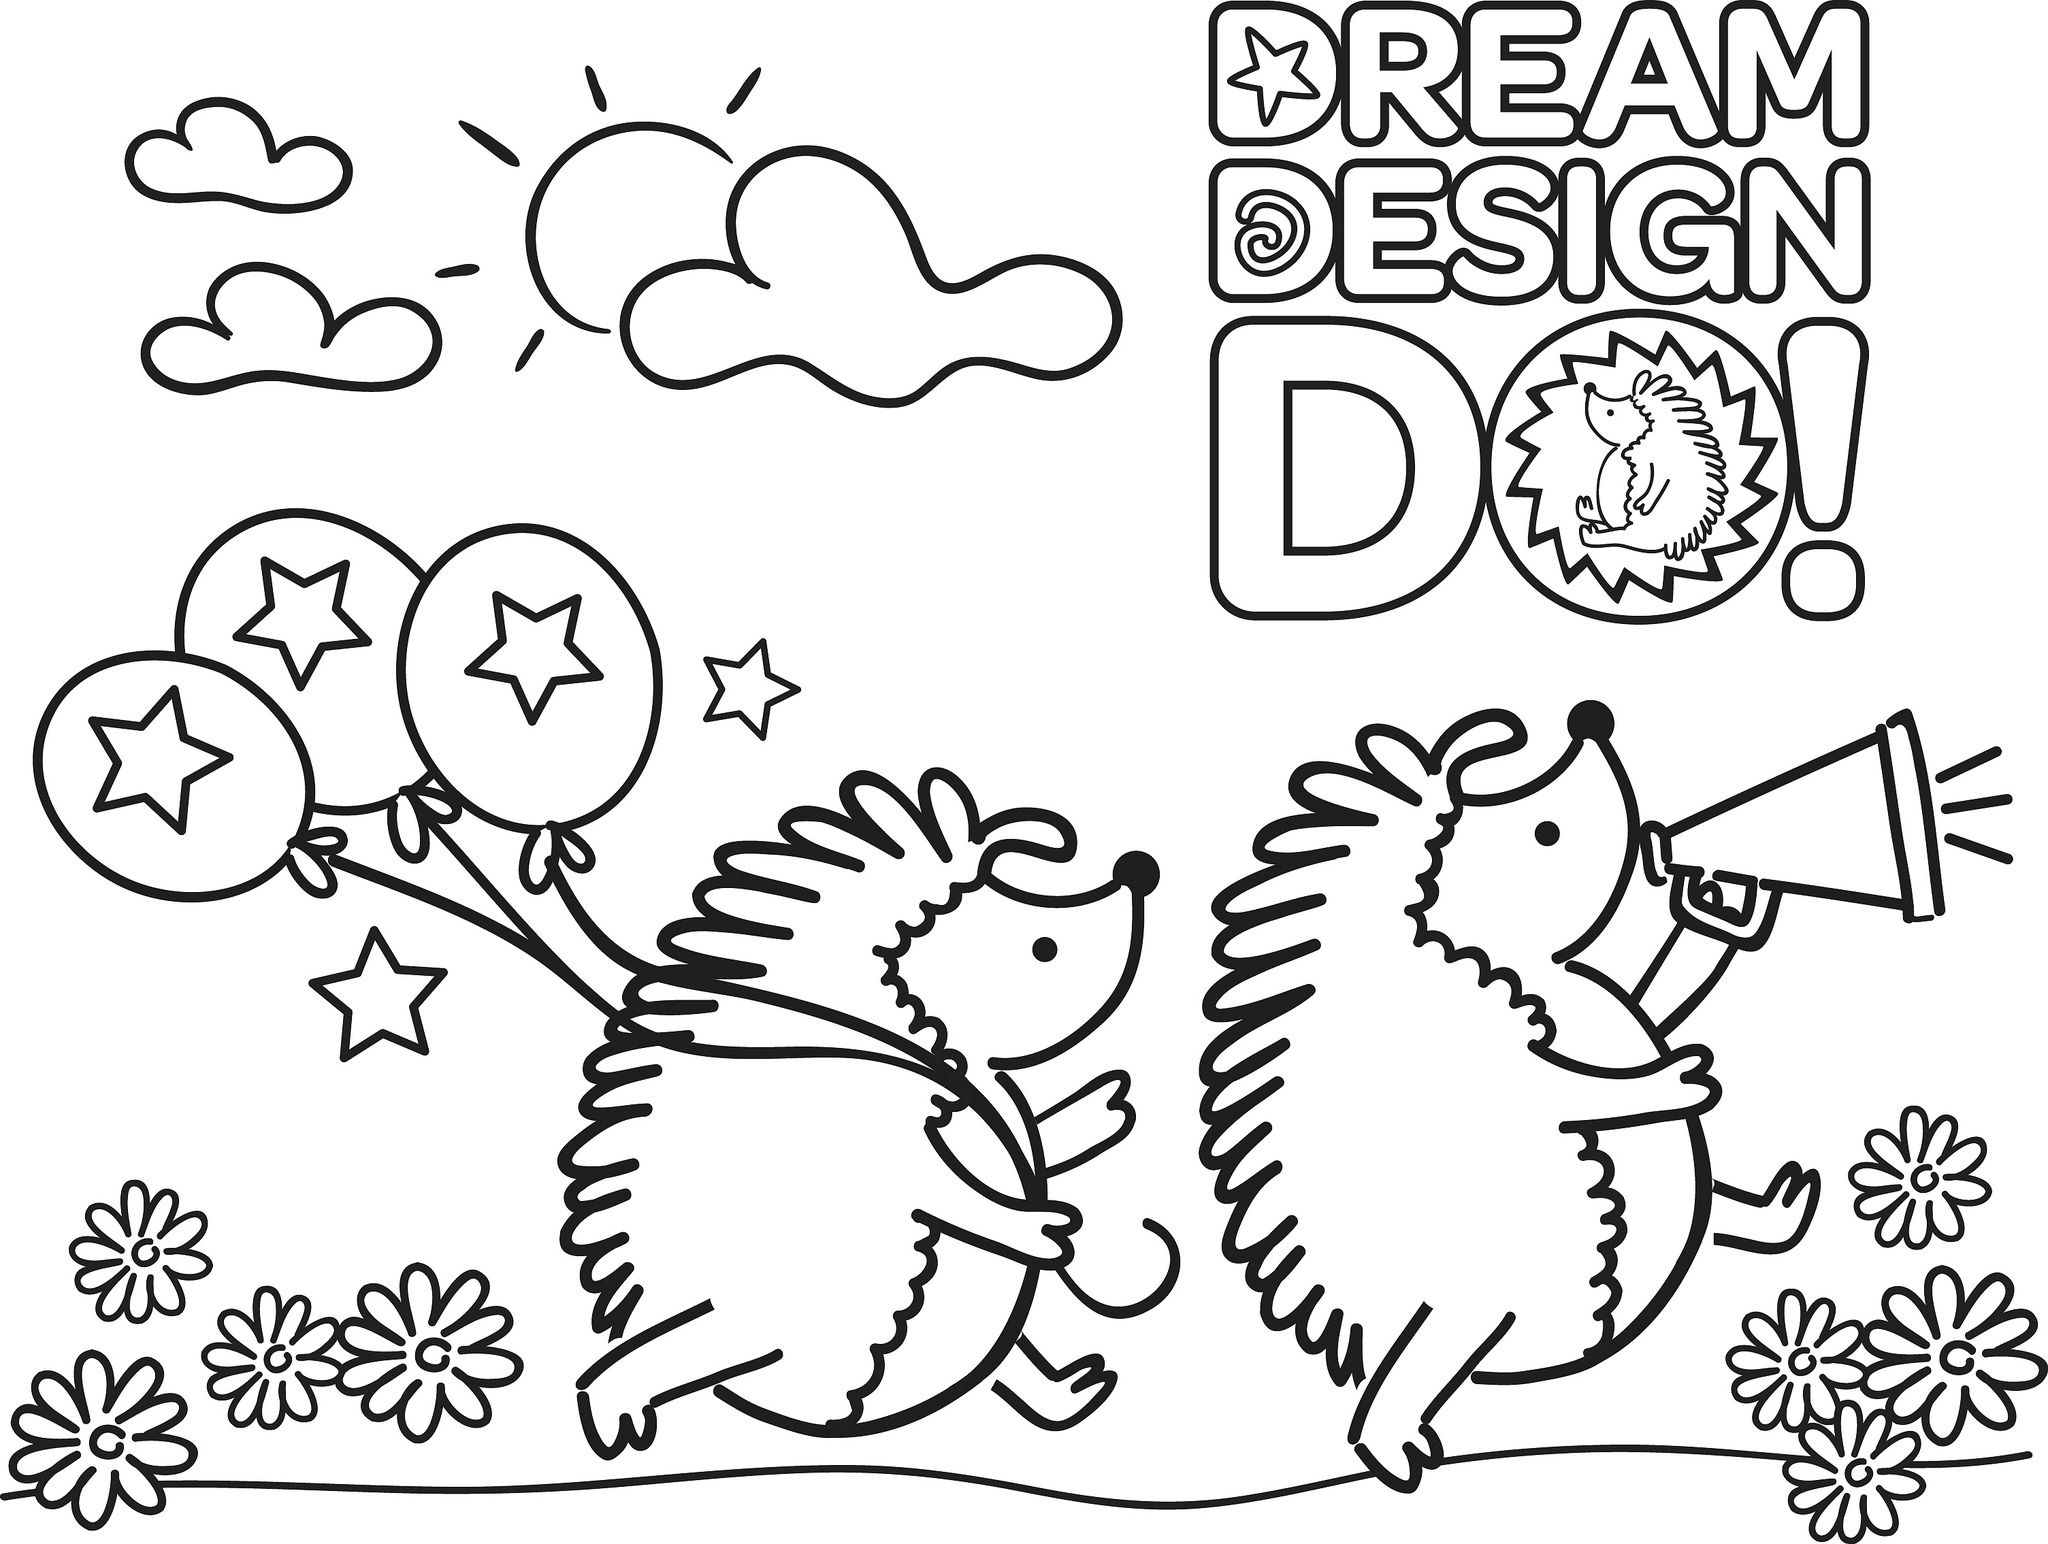 abc baker cookie coloring sheet - Baker Coloring Page